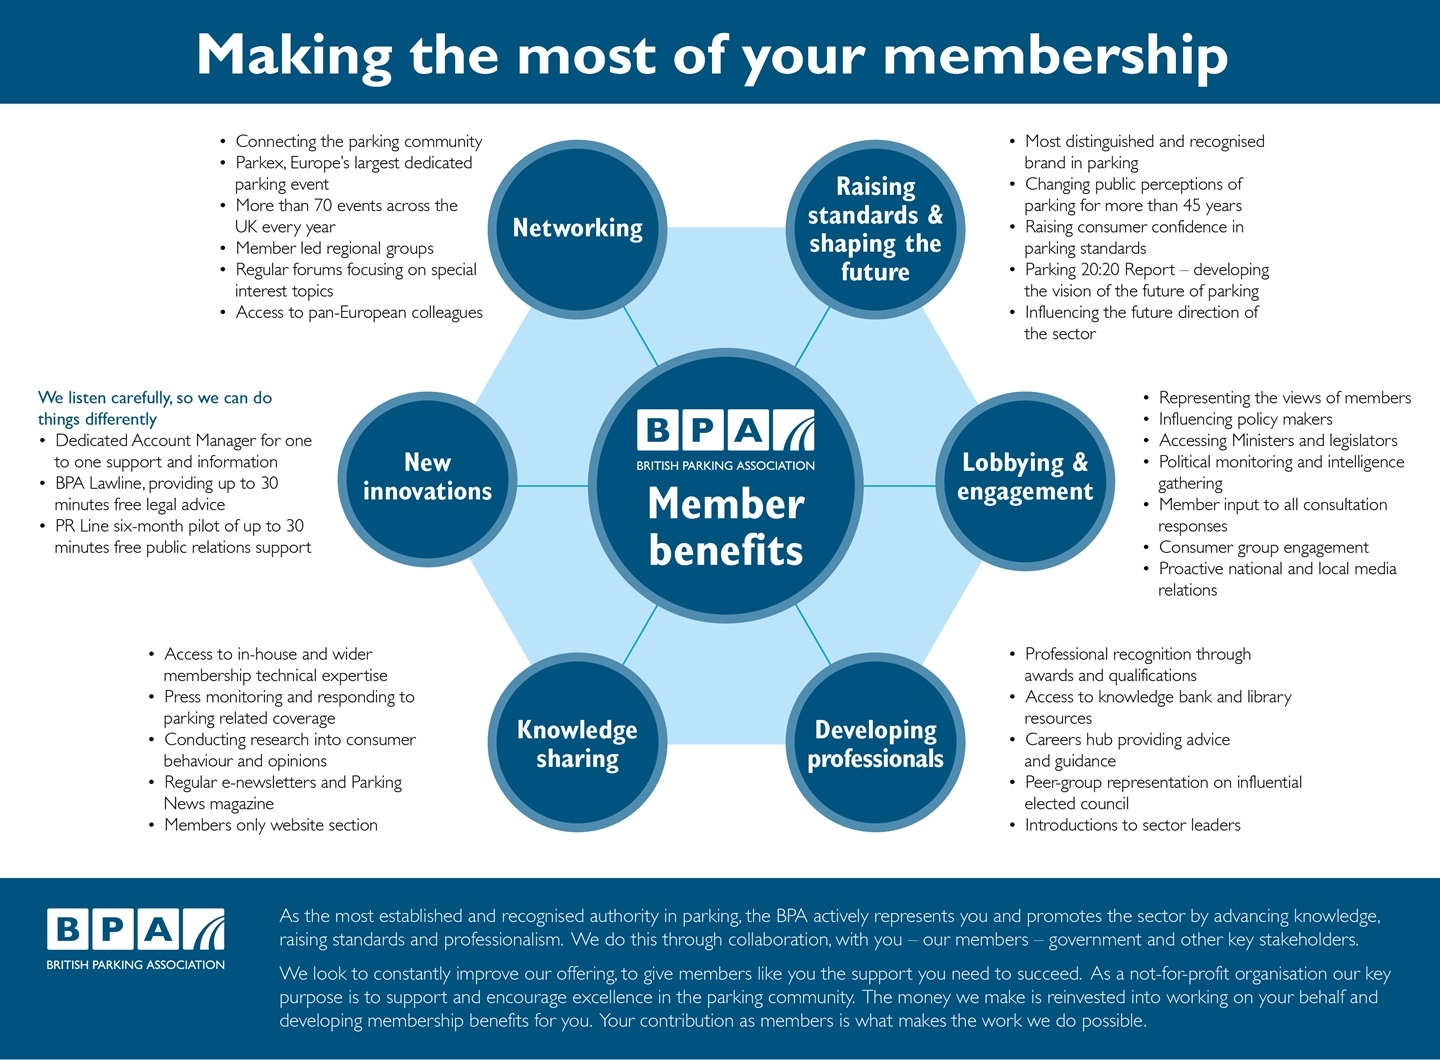 BPA-Make-The-Most-Of-Membership-infographic-v8-02 2